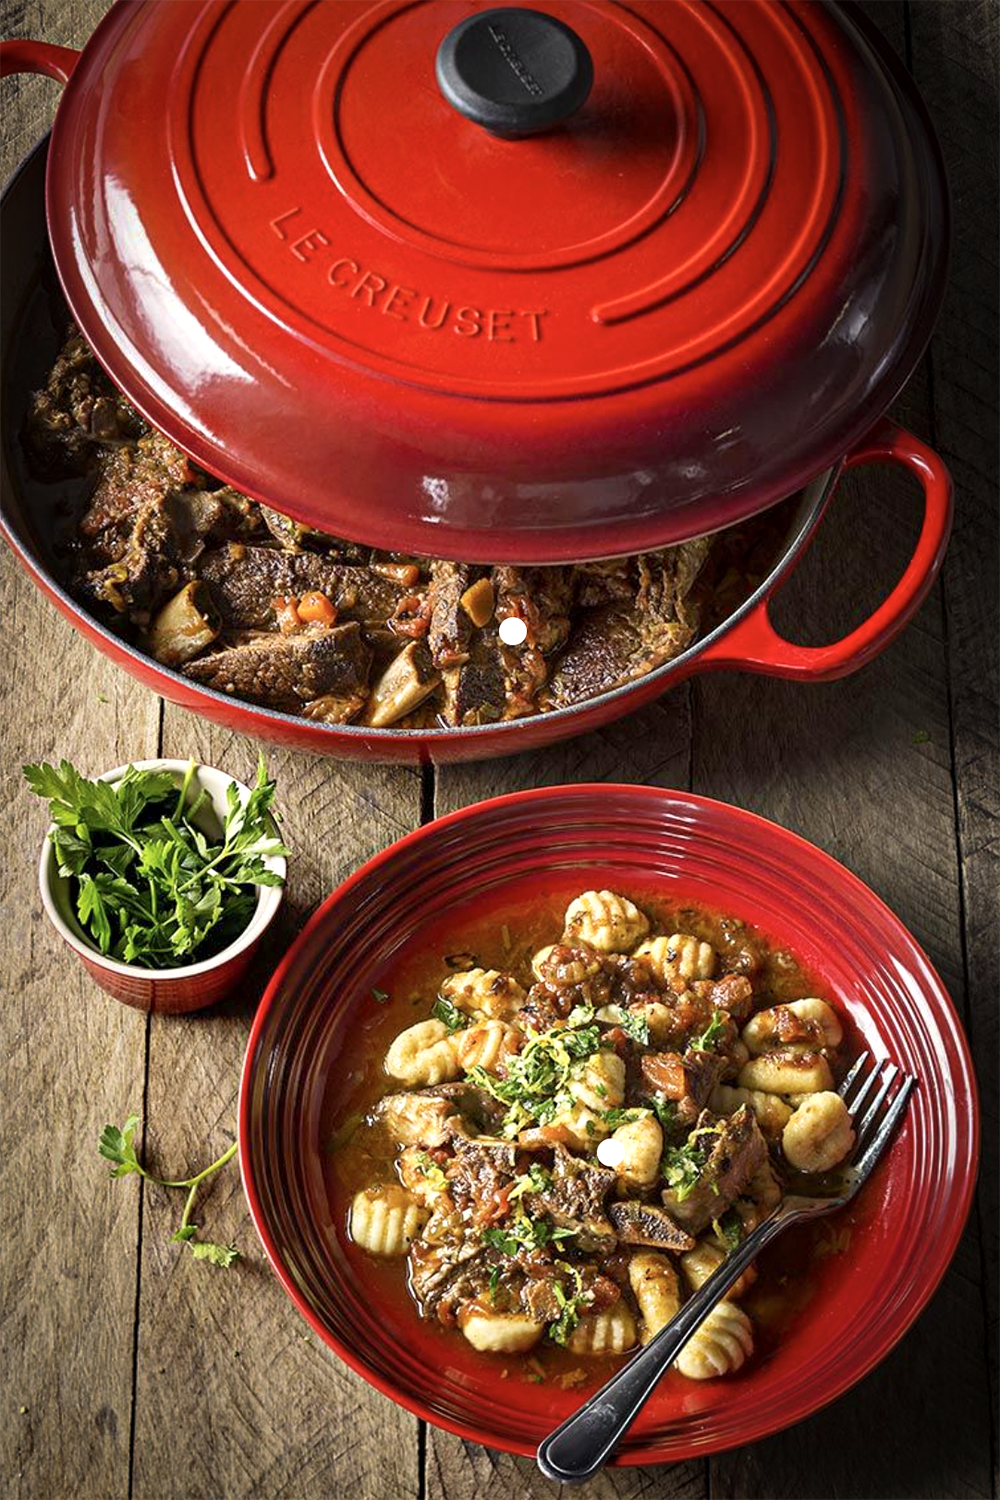 Red Le Creuset ramekin, plate and casserole dish with lid half off showing beef bourgignon and gnocchi.